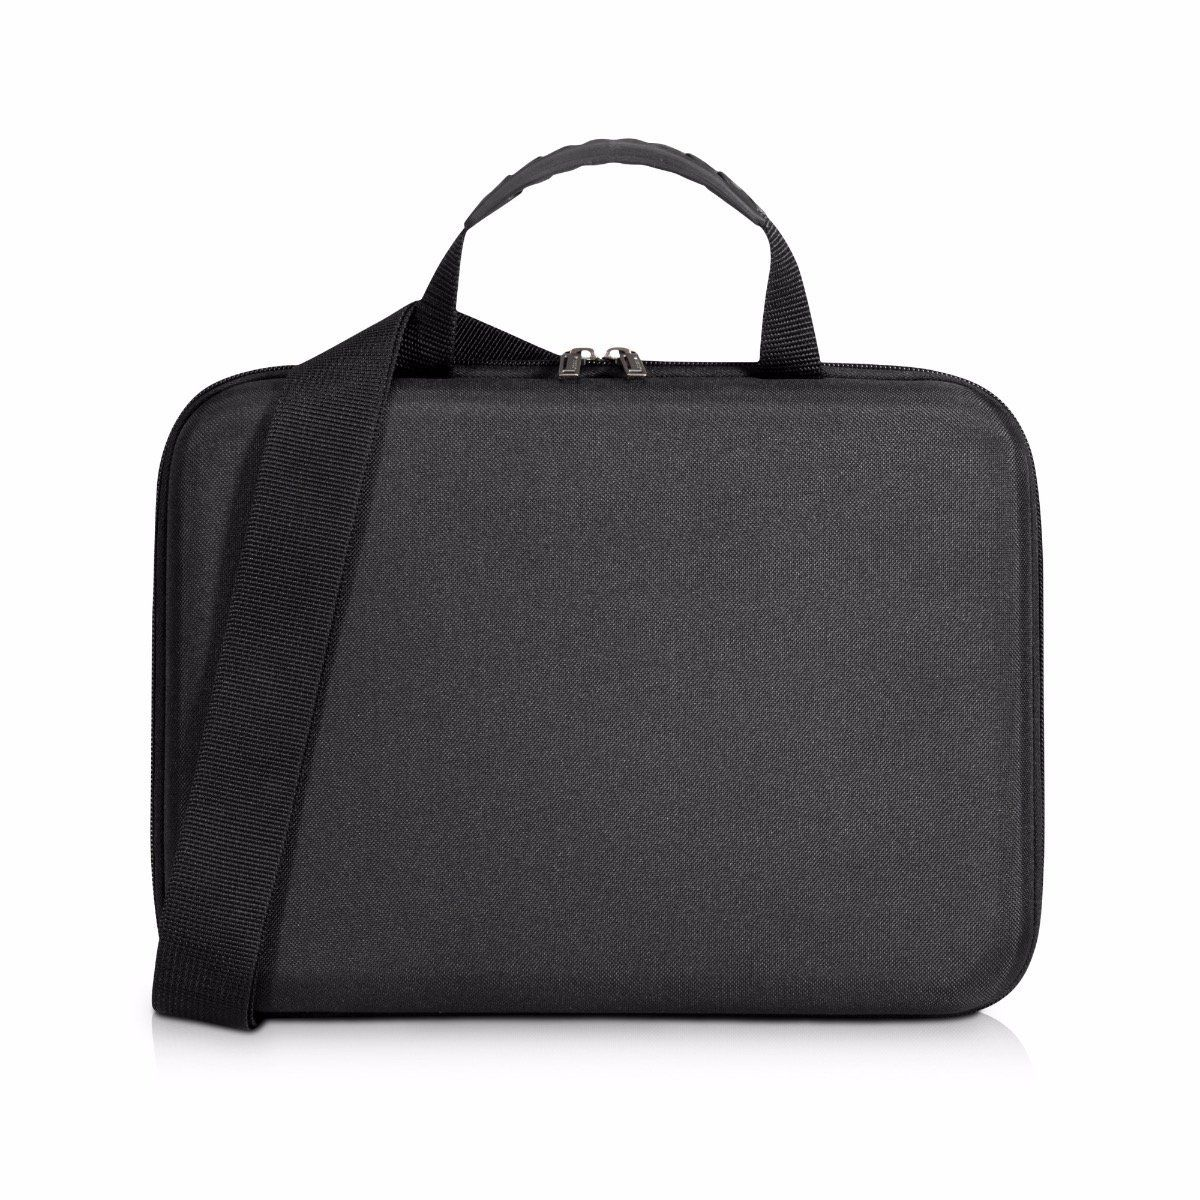 EVA Hard Case With Separate Tablet Slot, up to 12.1-Inch